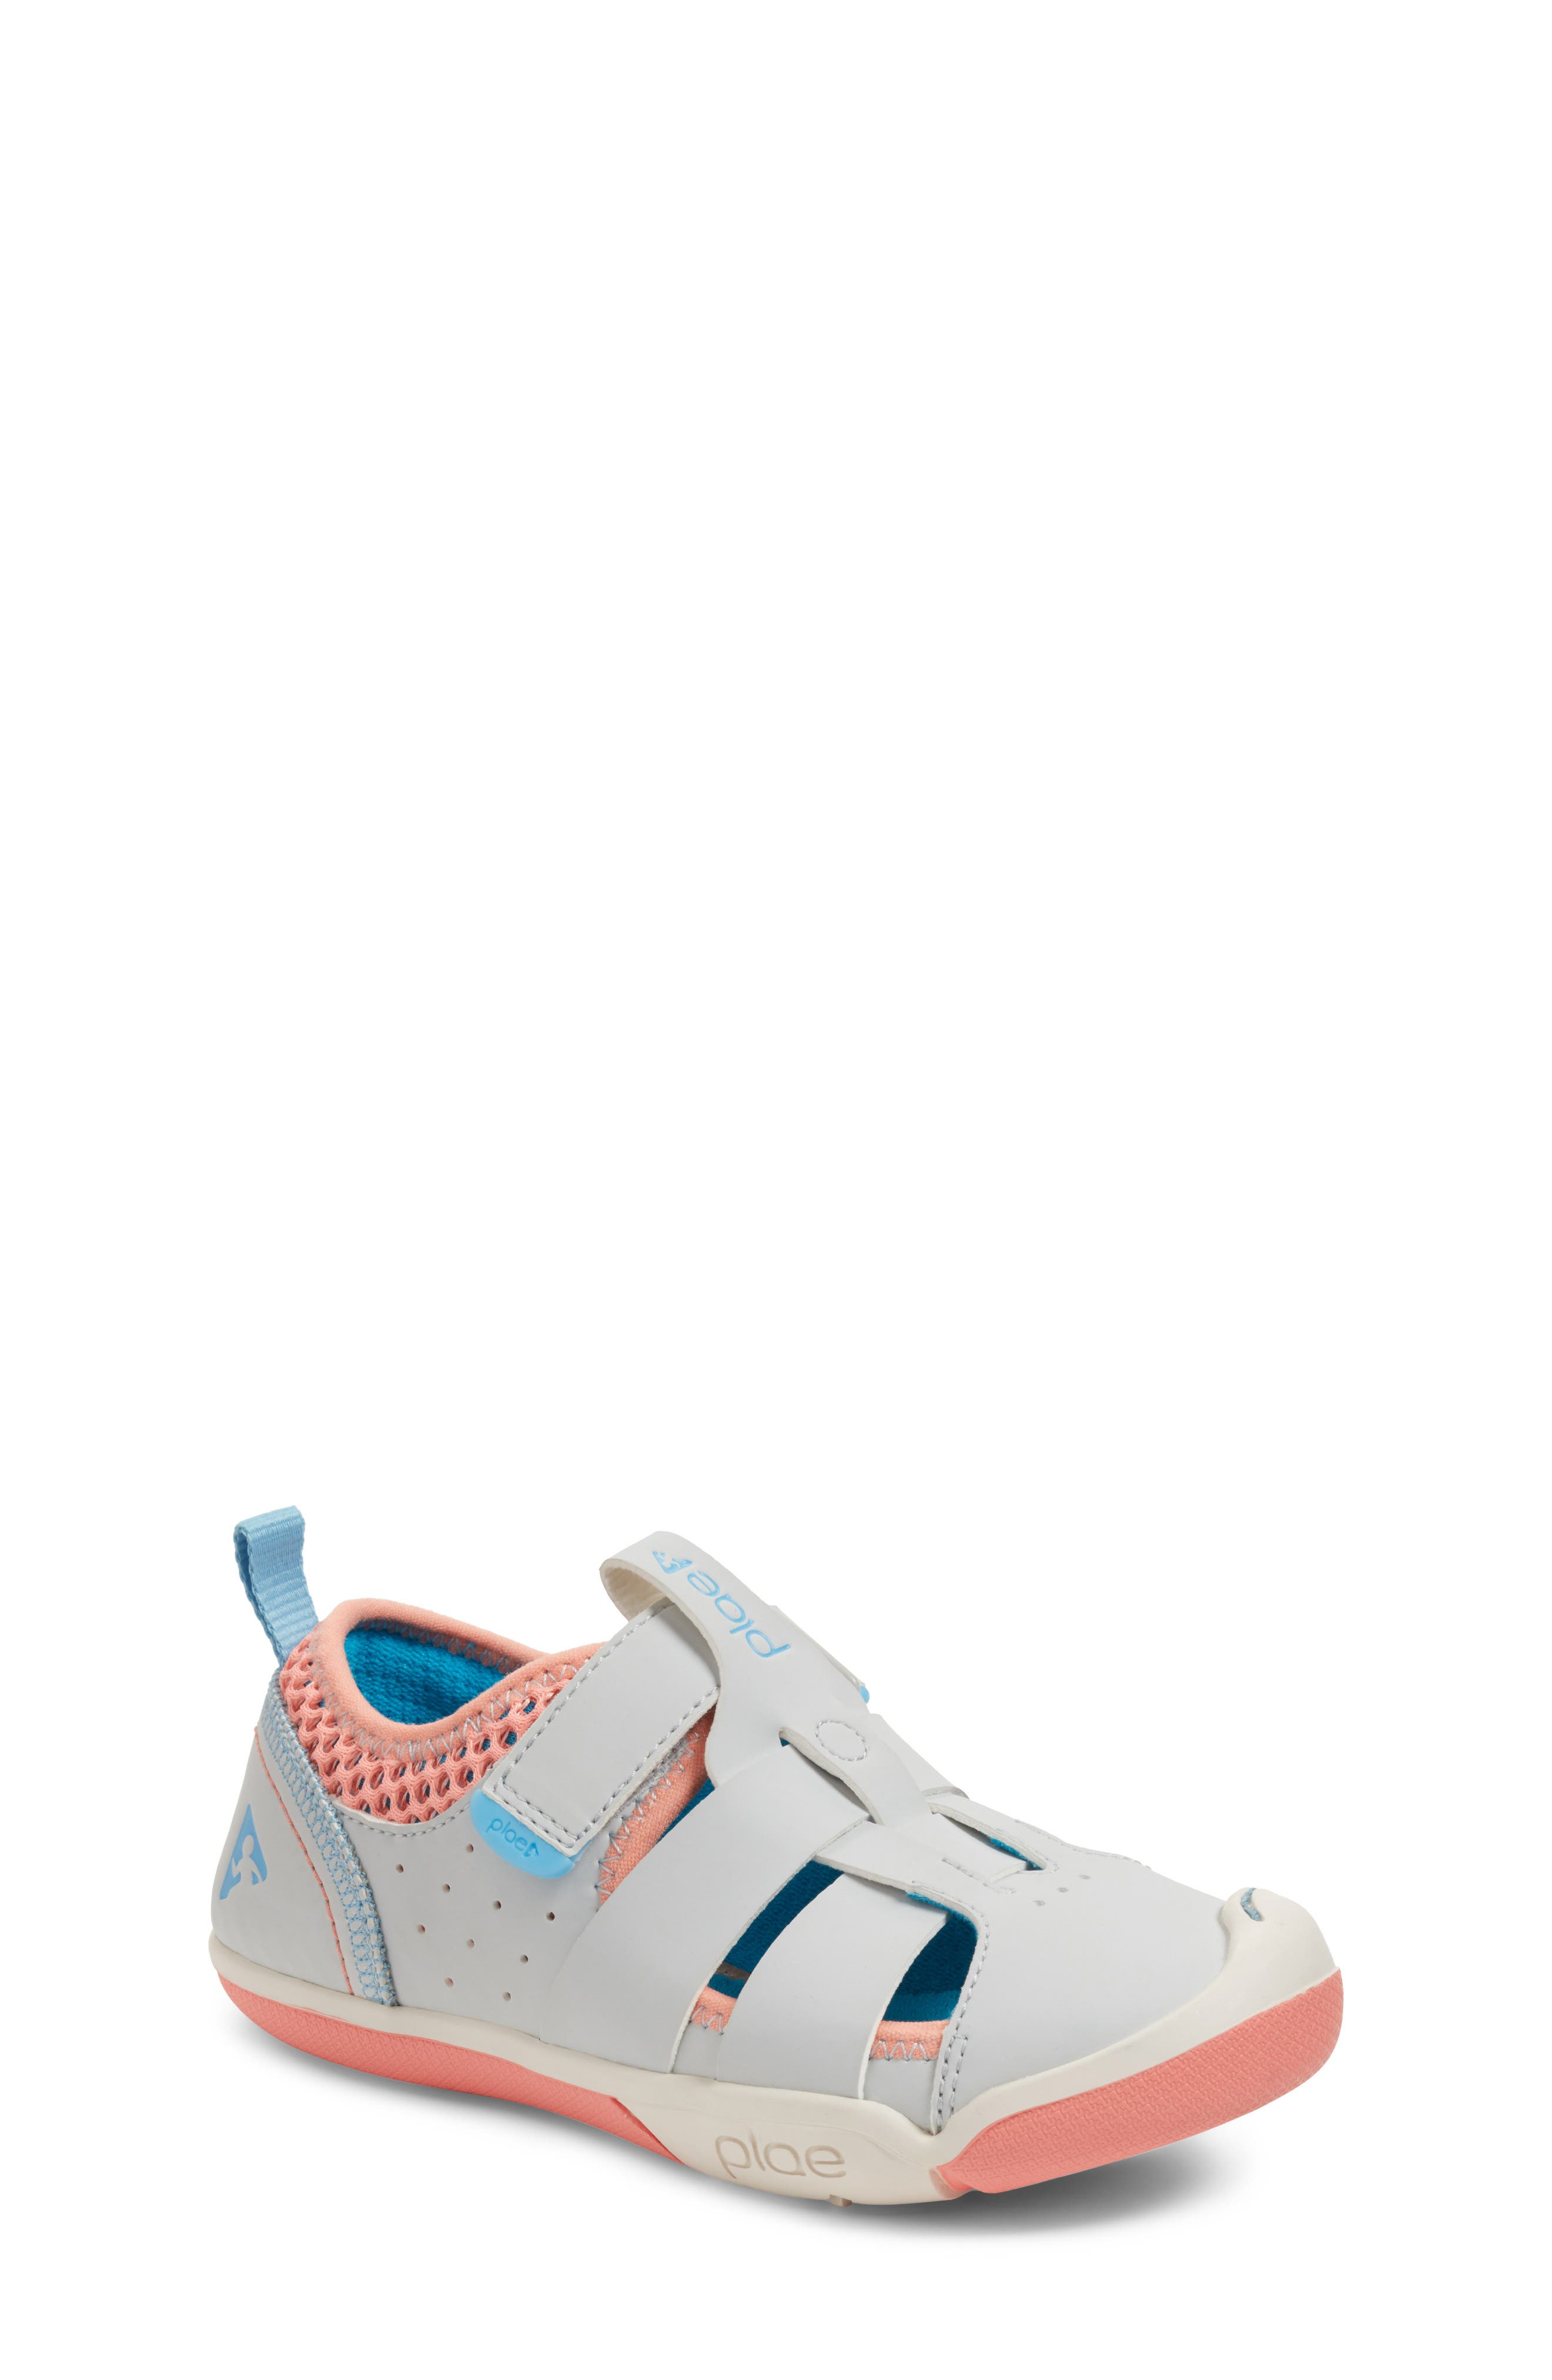 PLAE 'Sam' Customizable Sneaker (Walker, Toddler, Little Kid & Big Kid)